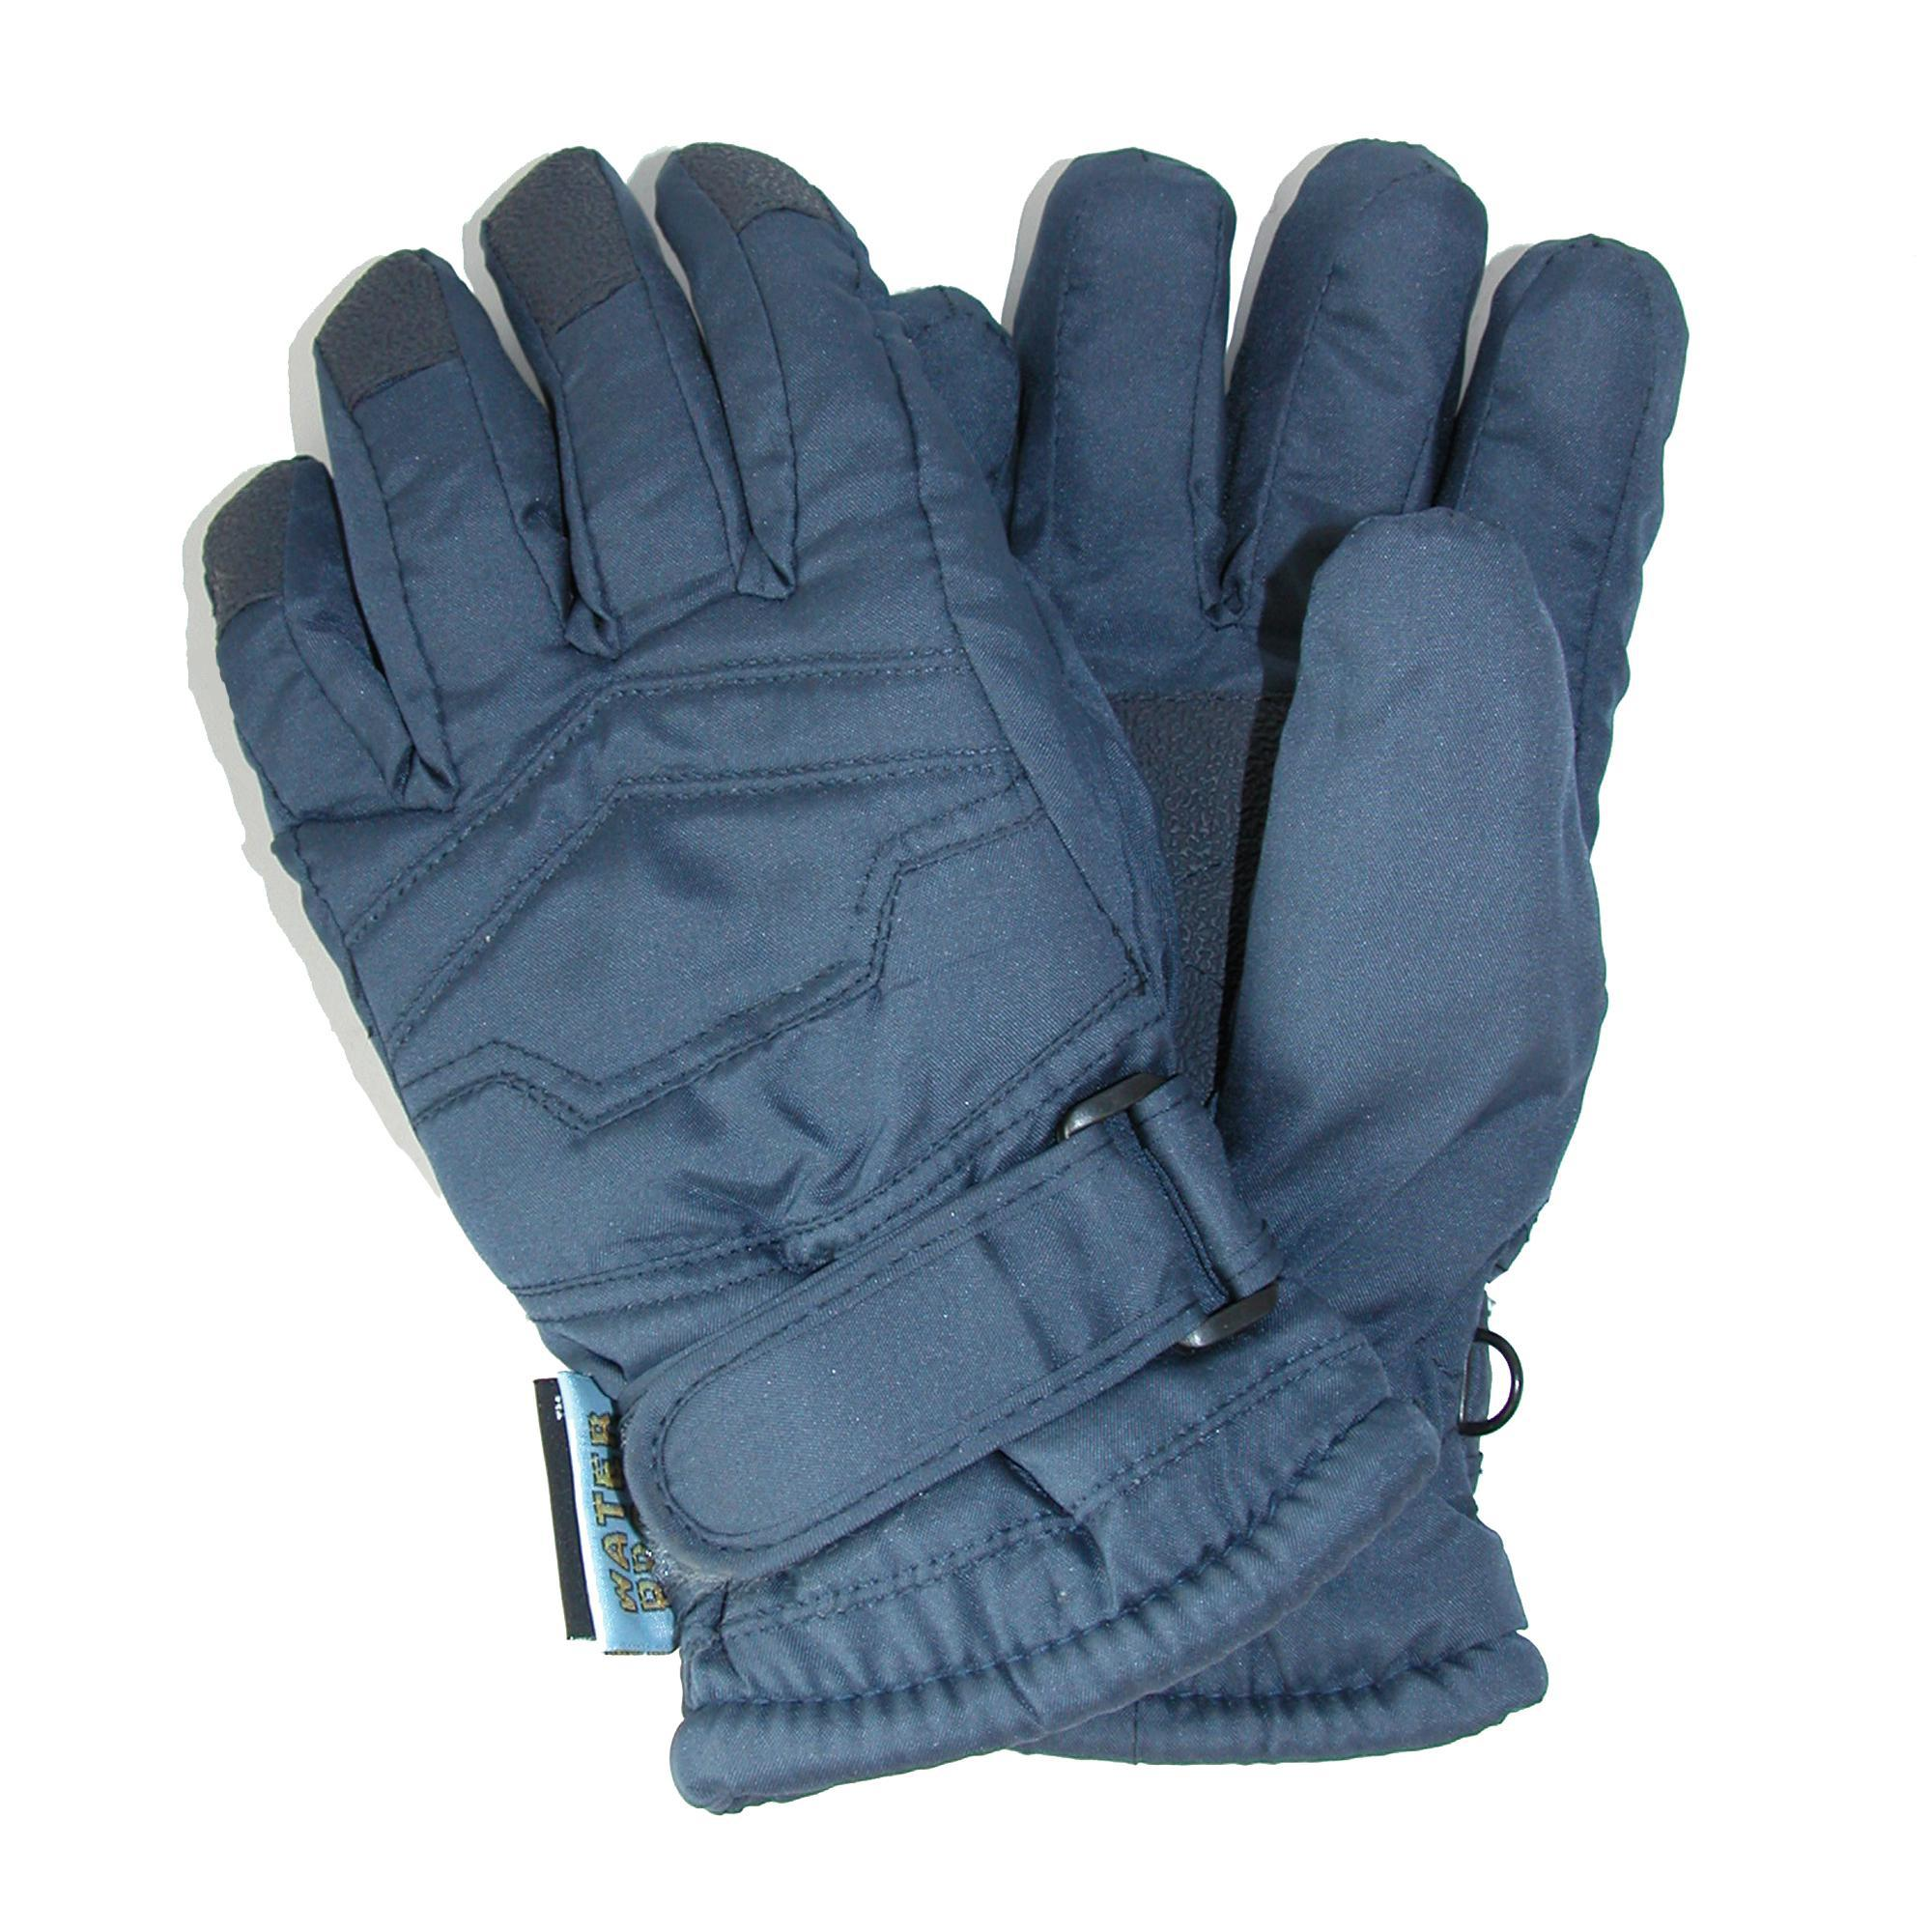 New CTM Kids' Thinsulate Lined Waterproof Winter Gloves | eBay